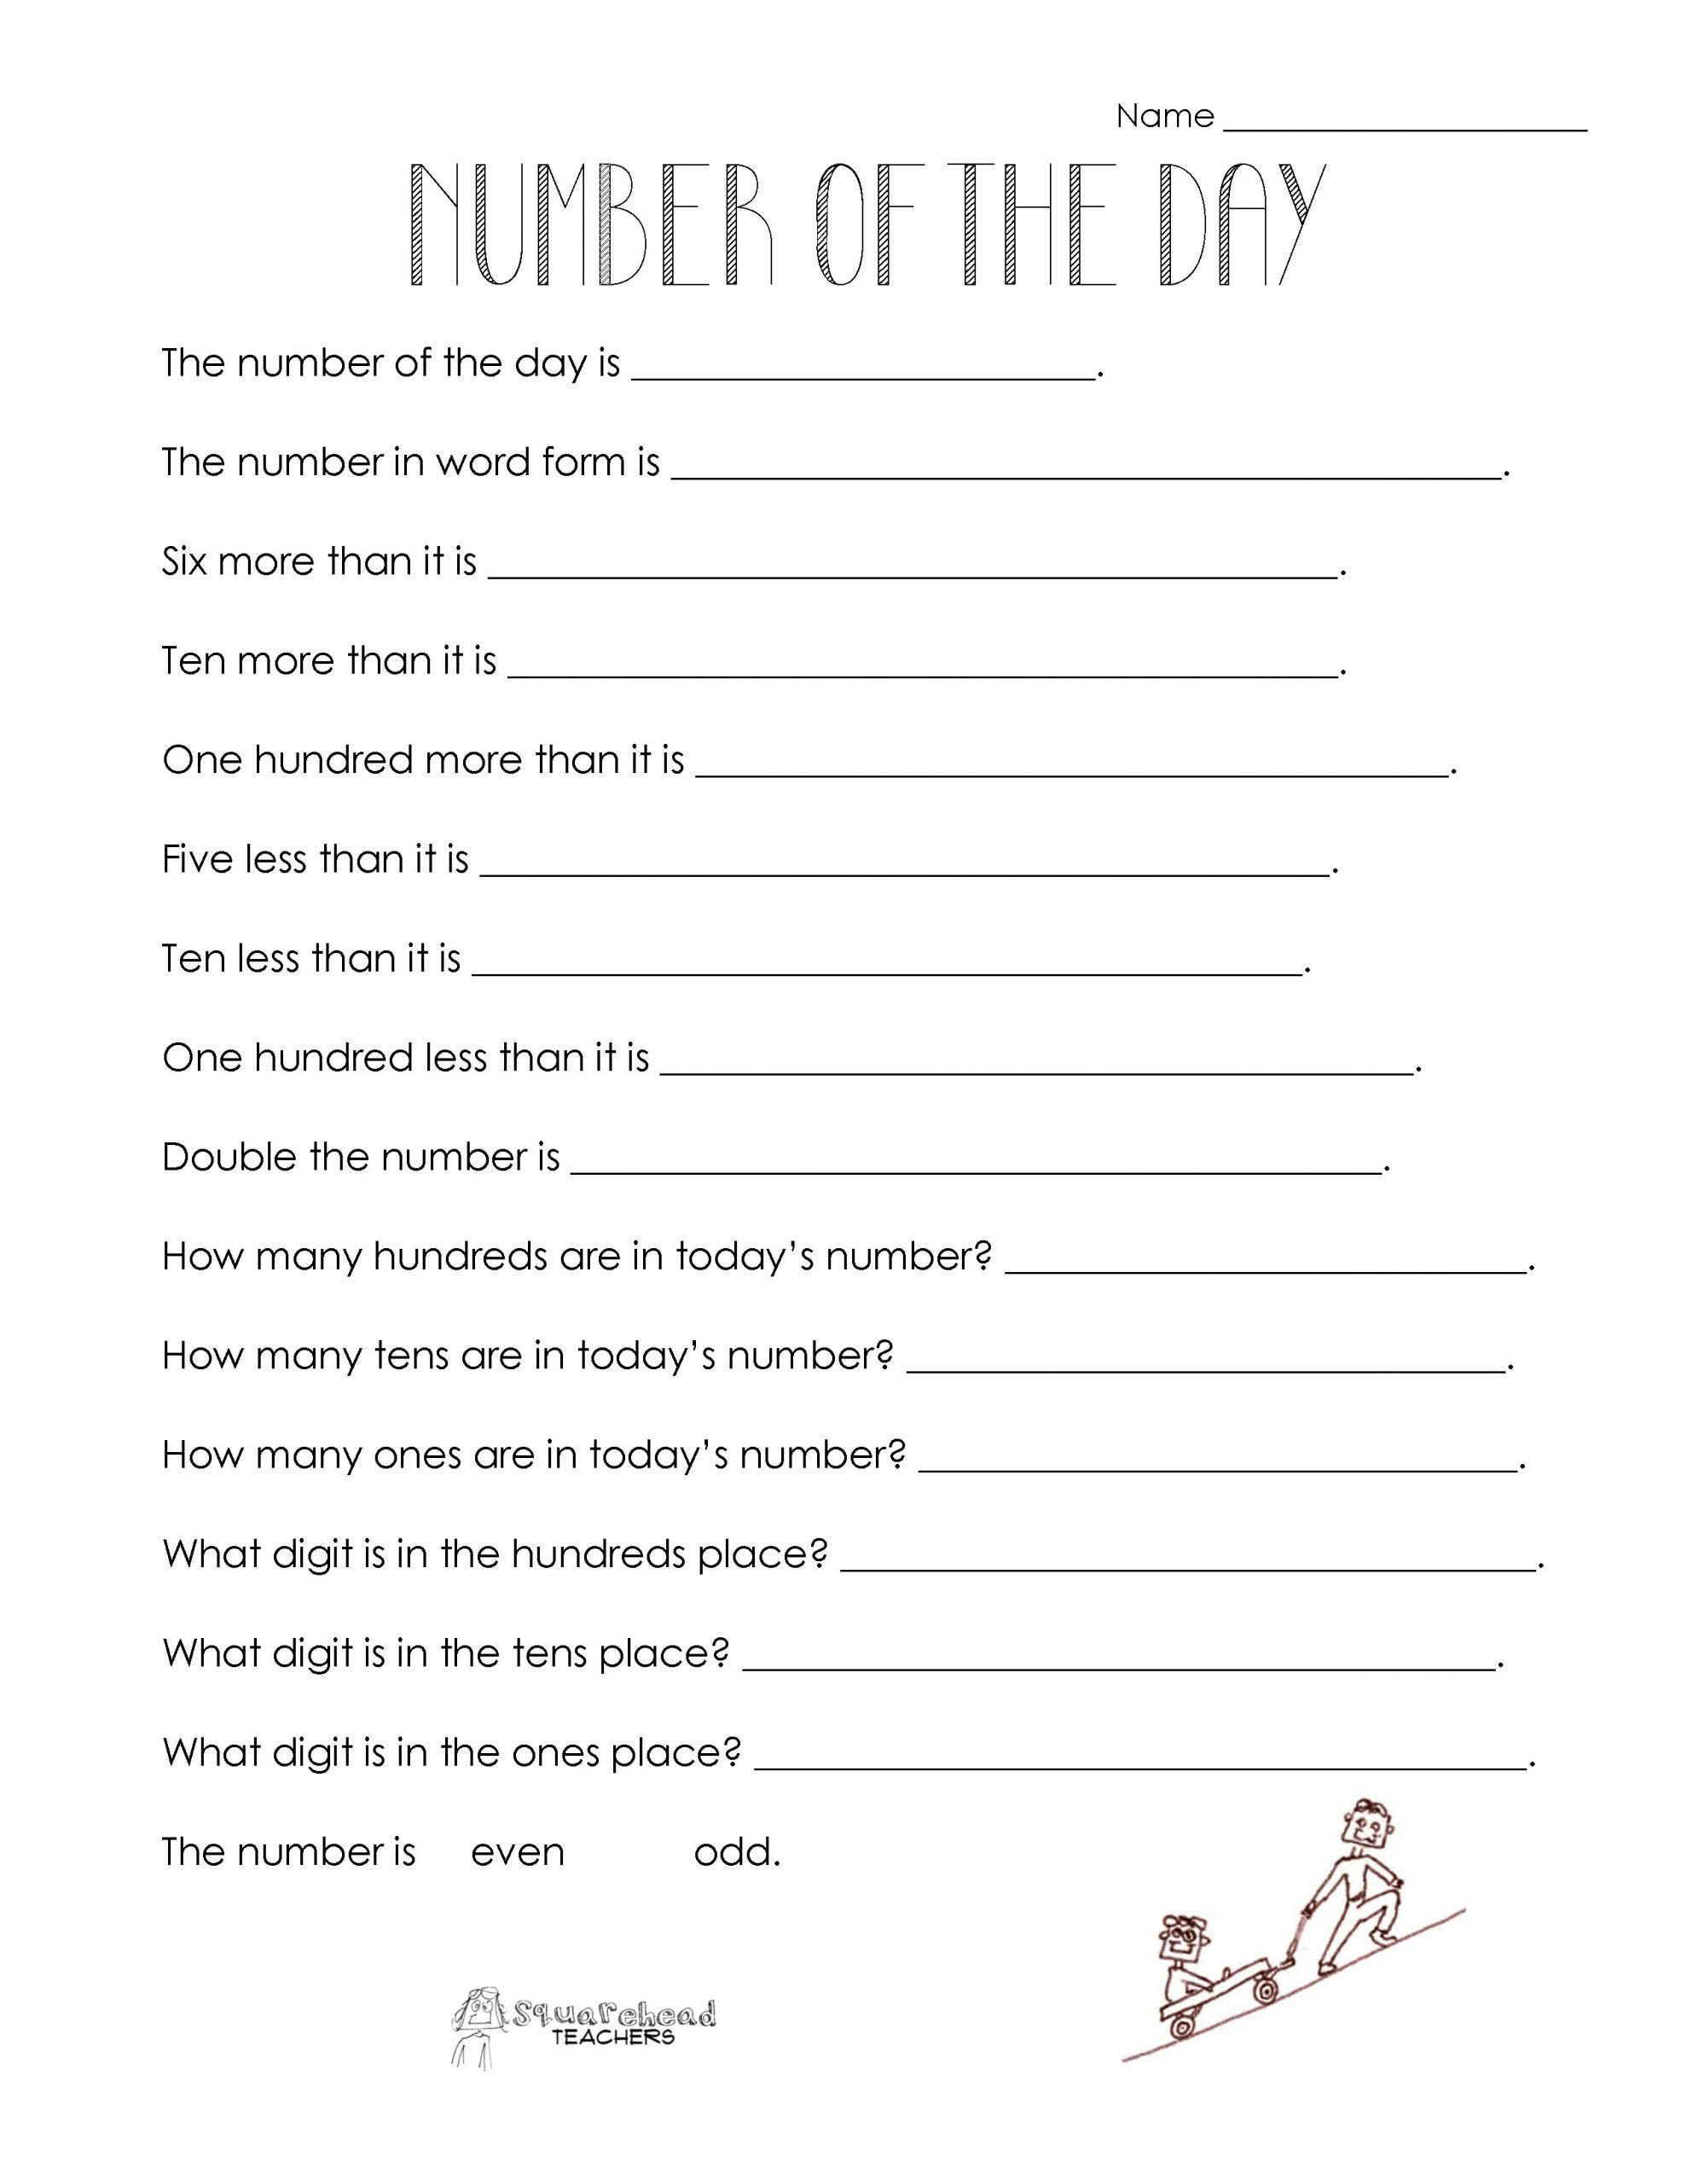 Sequencing Worksheet 2nd Grade Sequencing Worksheet 2nd Grade Number the Day Worksheet